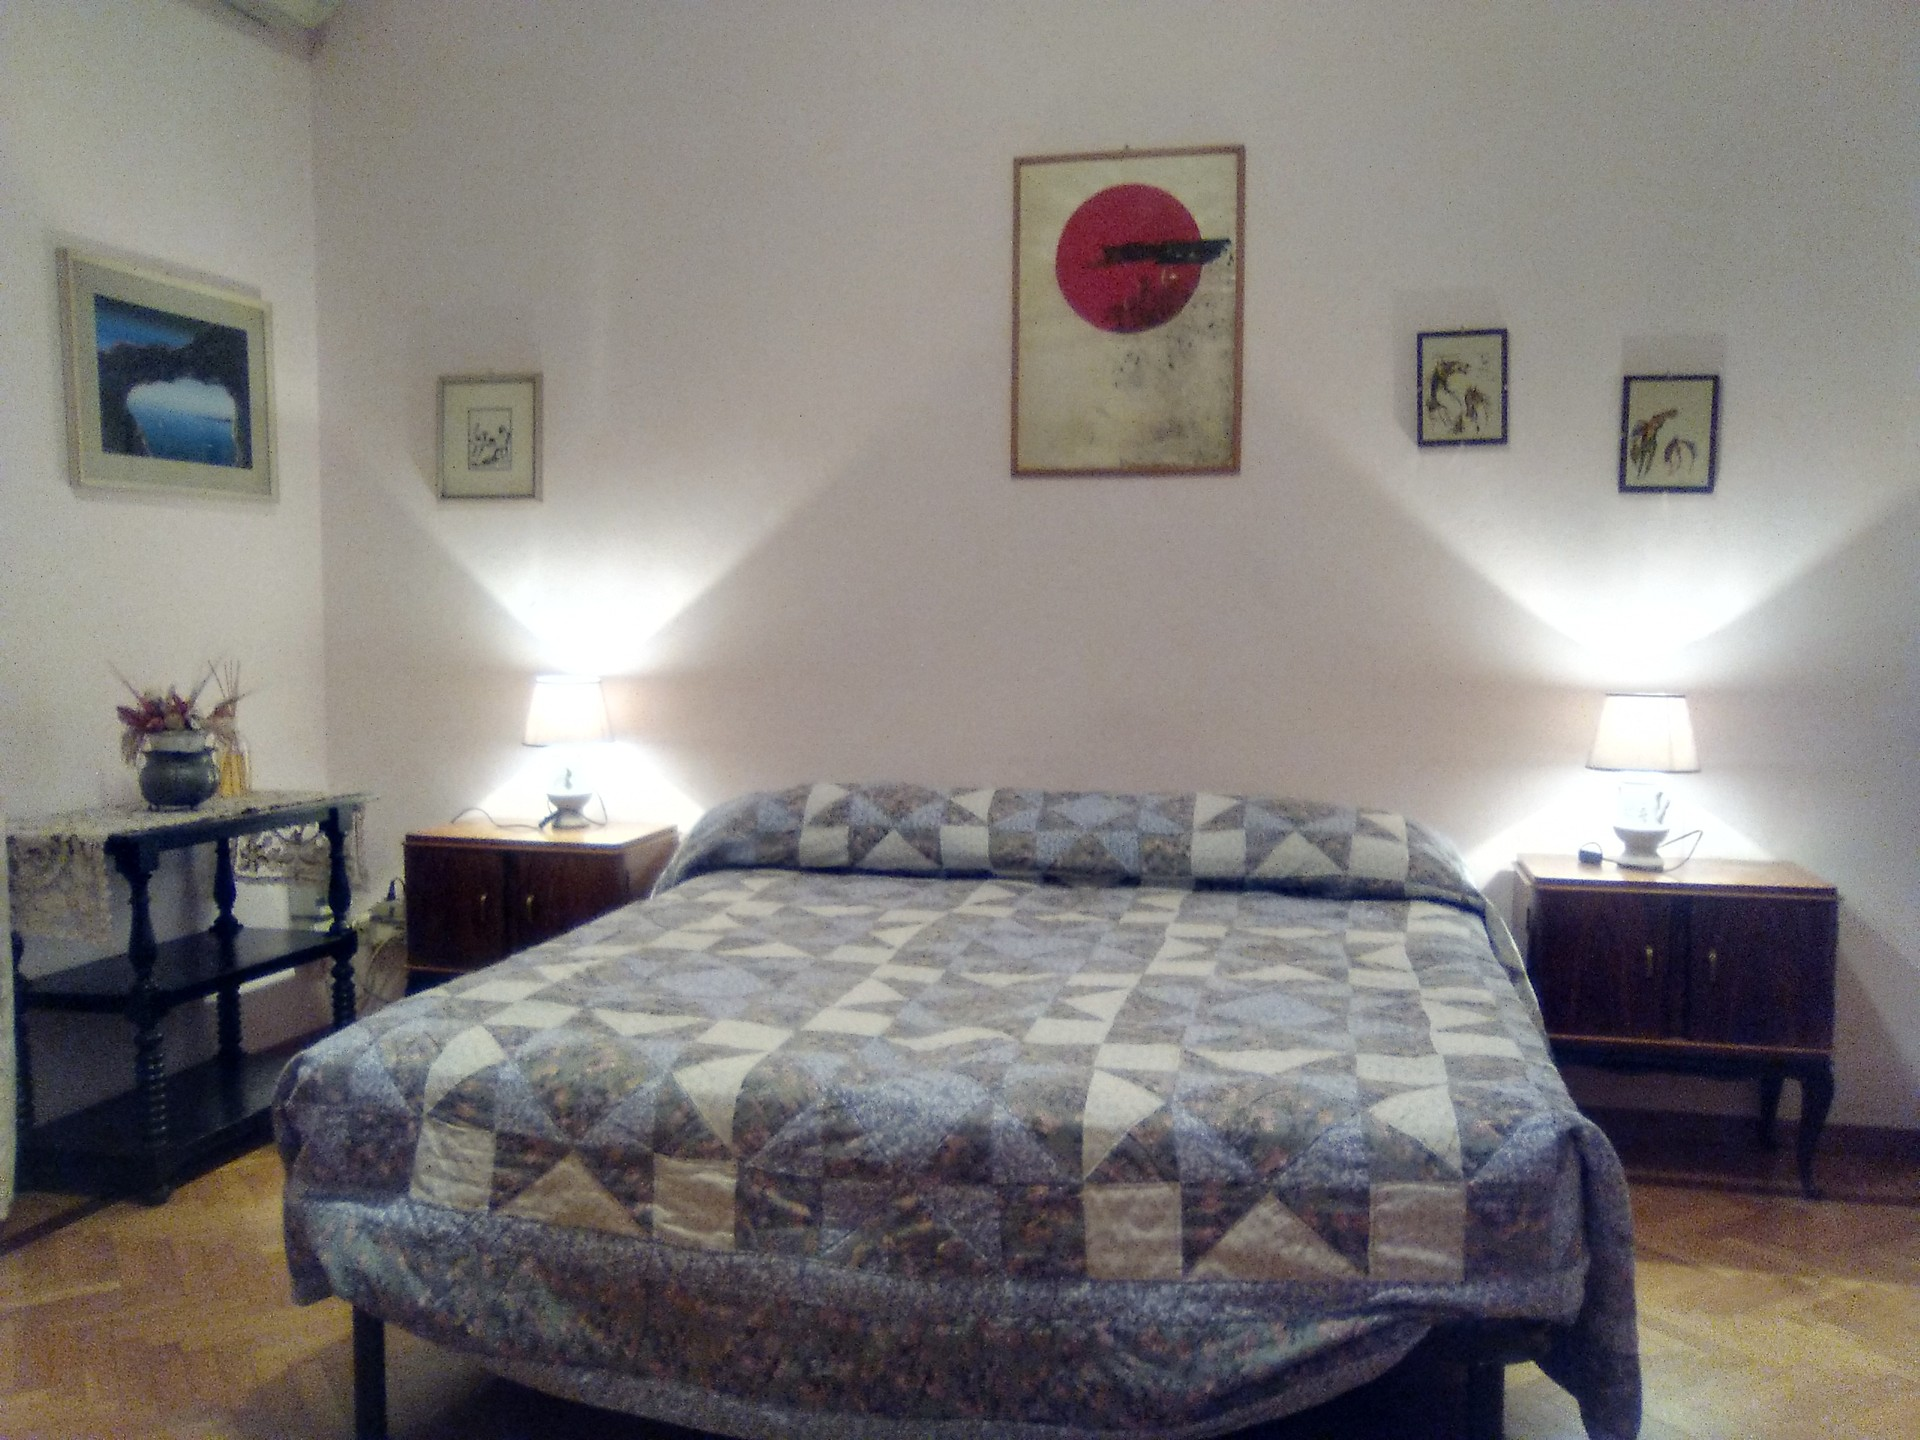 Camera Con Letto Matrimoniale.Vasta Camera Con Letto Matrimoniale E Vista Su Giardini Room For